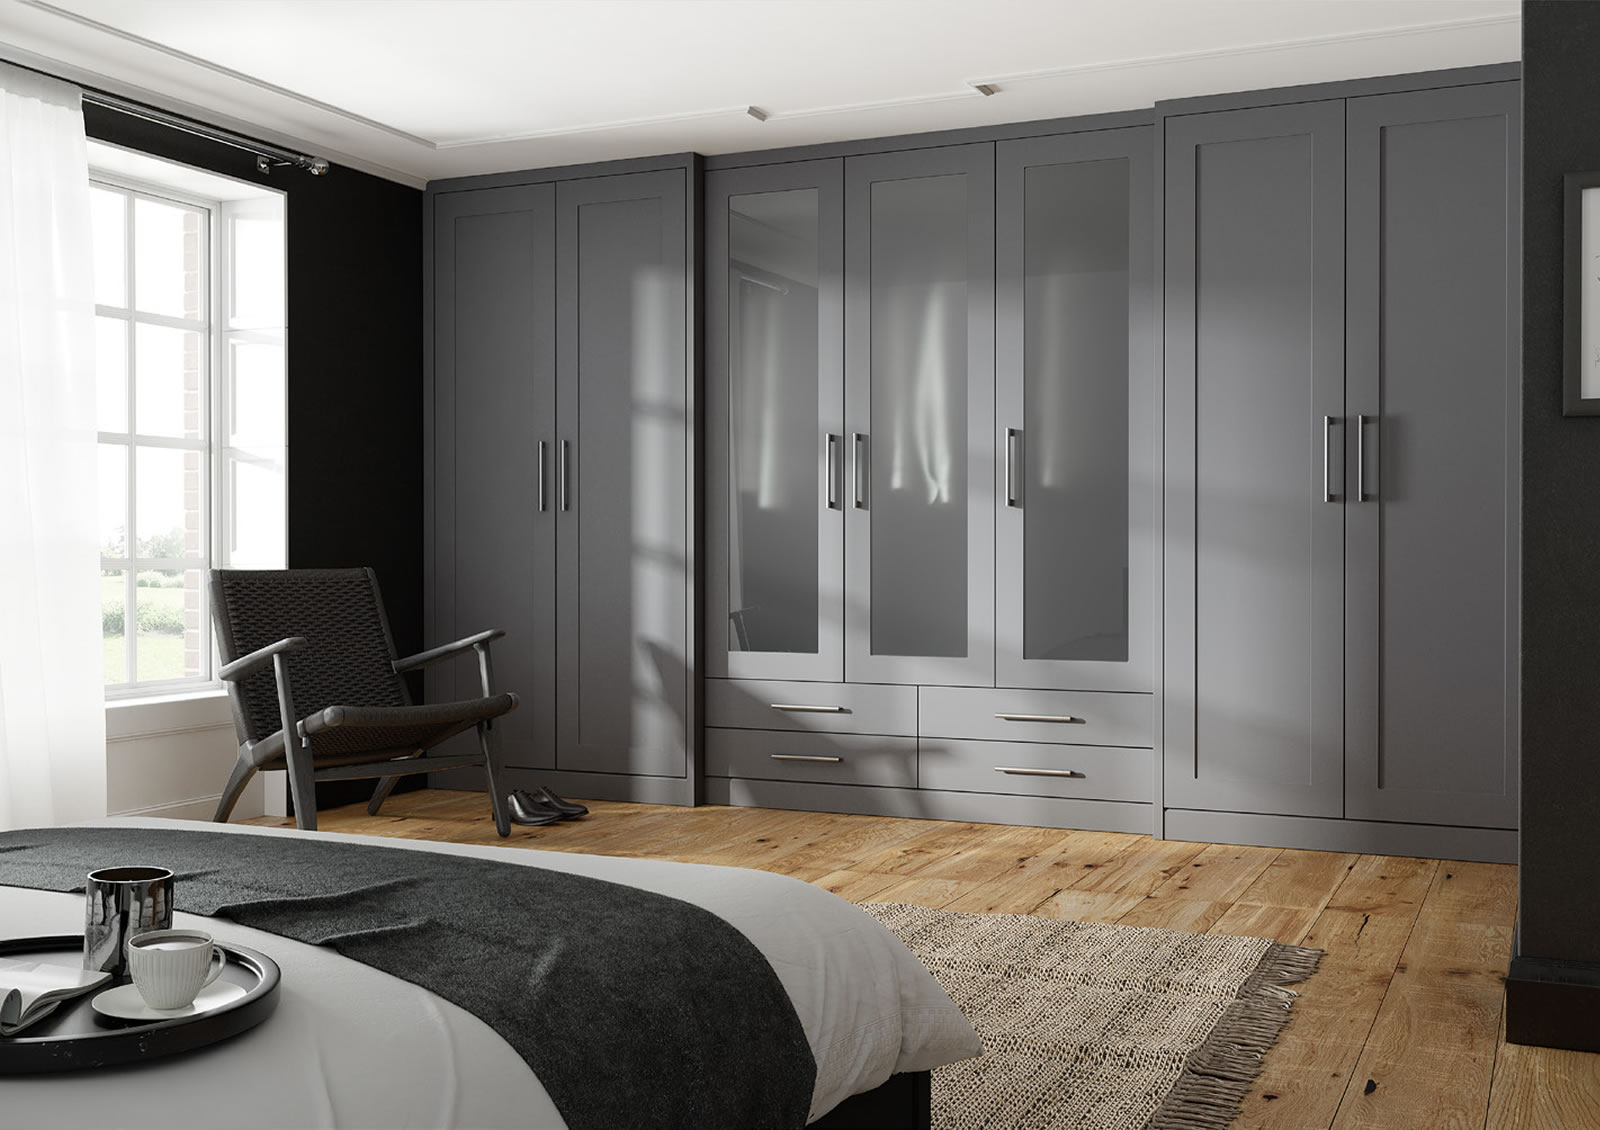 Mya fitted Bedrooms Shaker no Grooves shown in Basalt Grey Supermatt